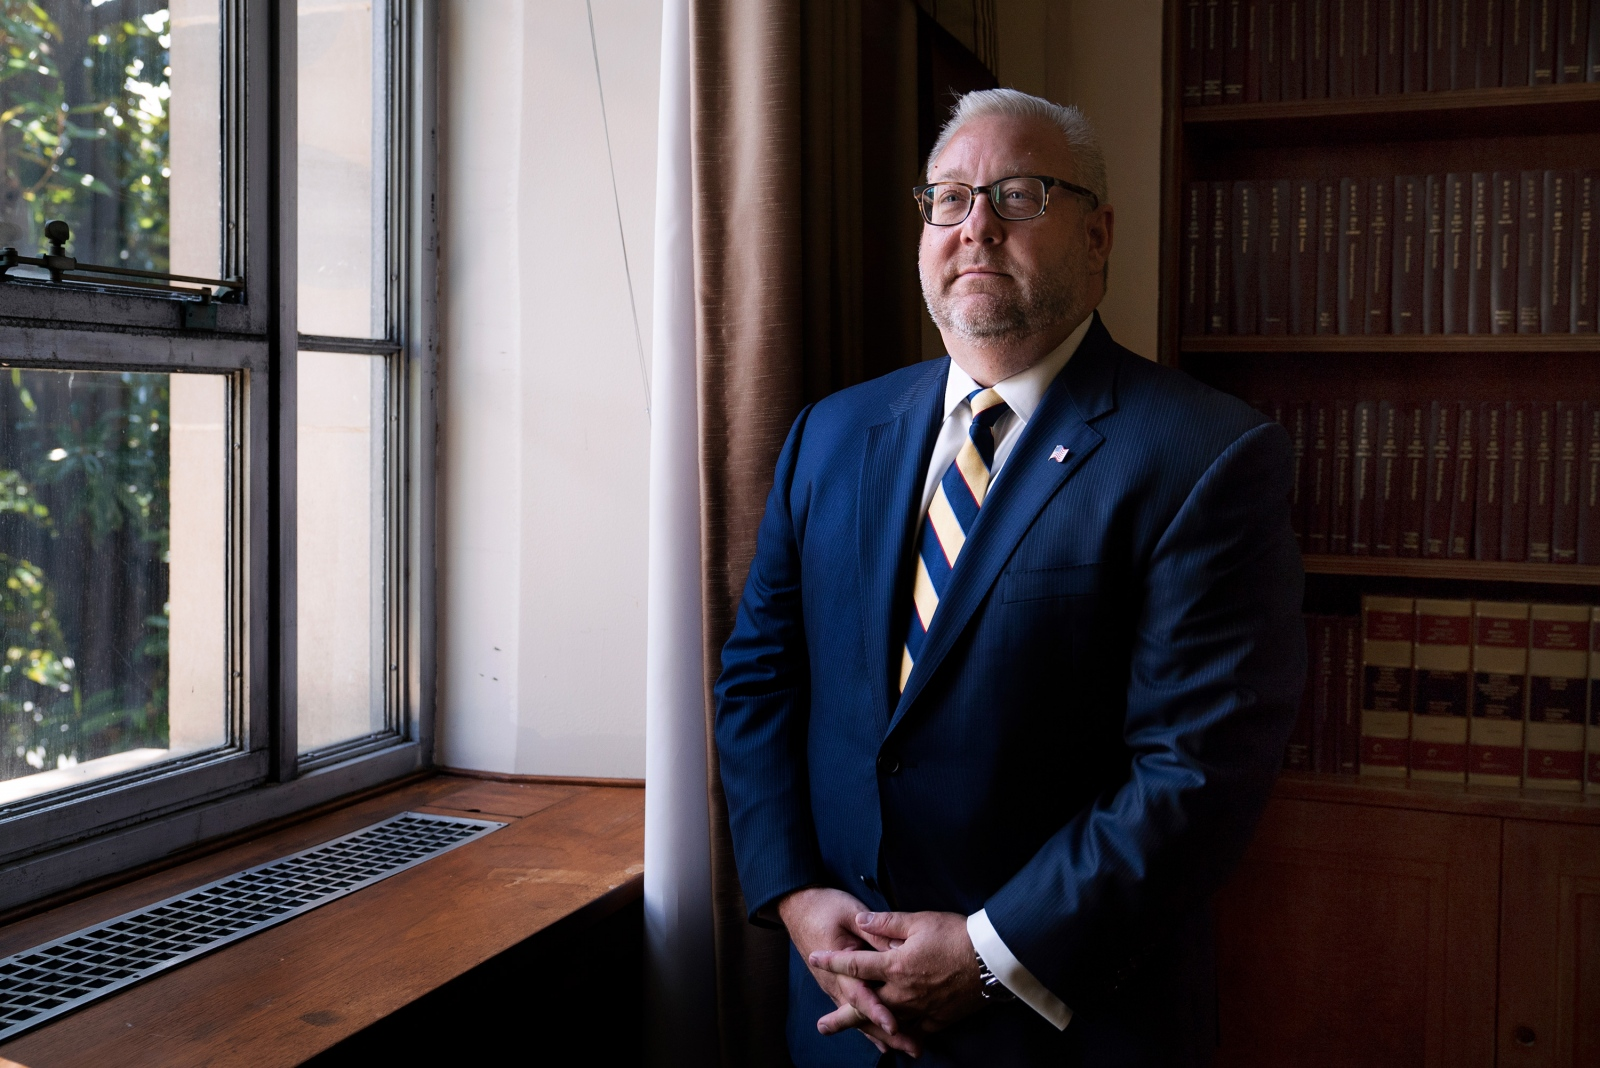 Assistant Attorney General Brian Benczkowski at Justice Department headquarters. He oversees more than 600 prosecutors and the others who work in the criminal division.